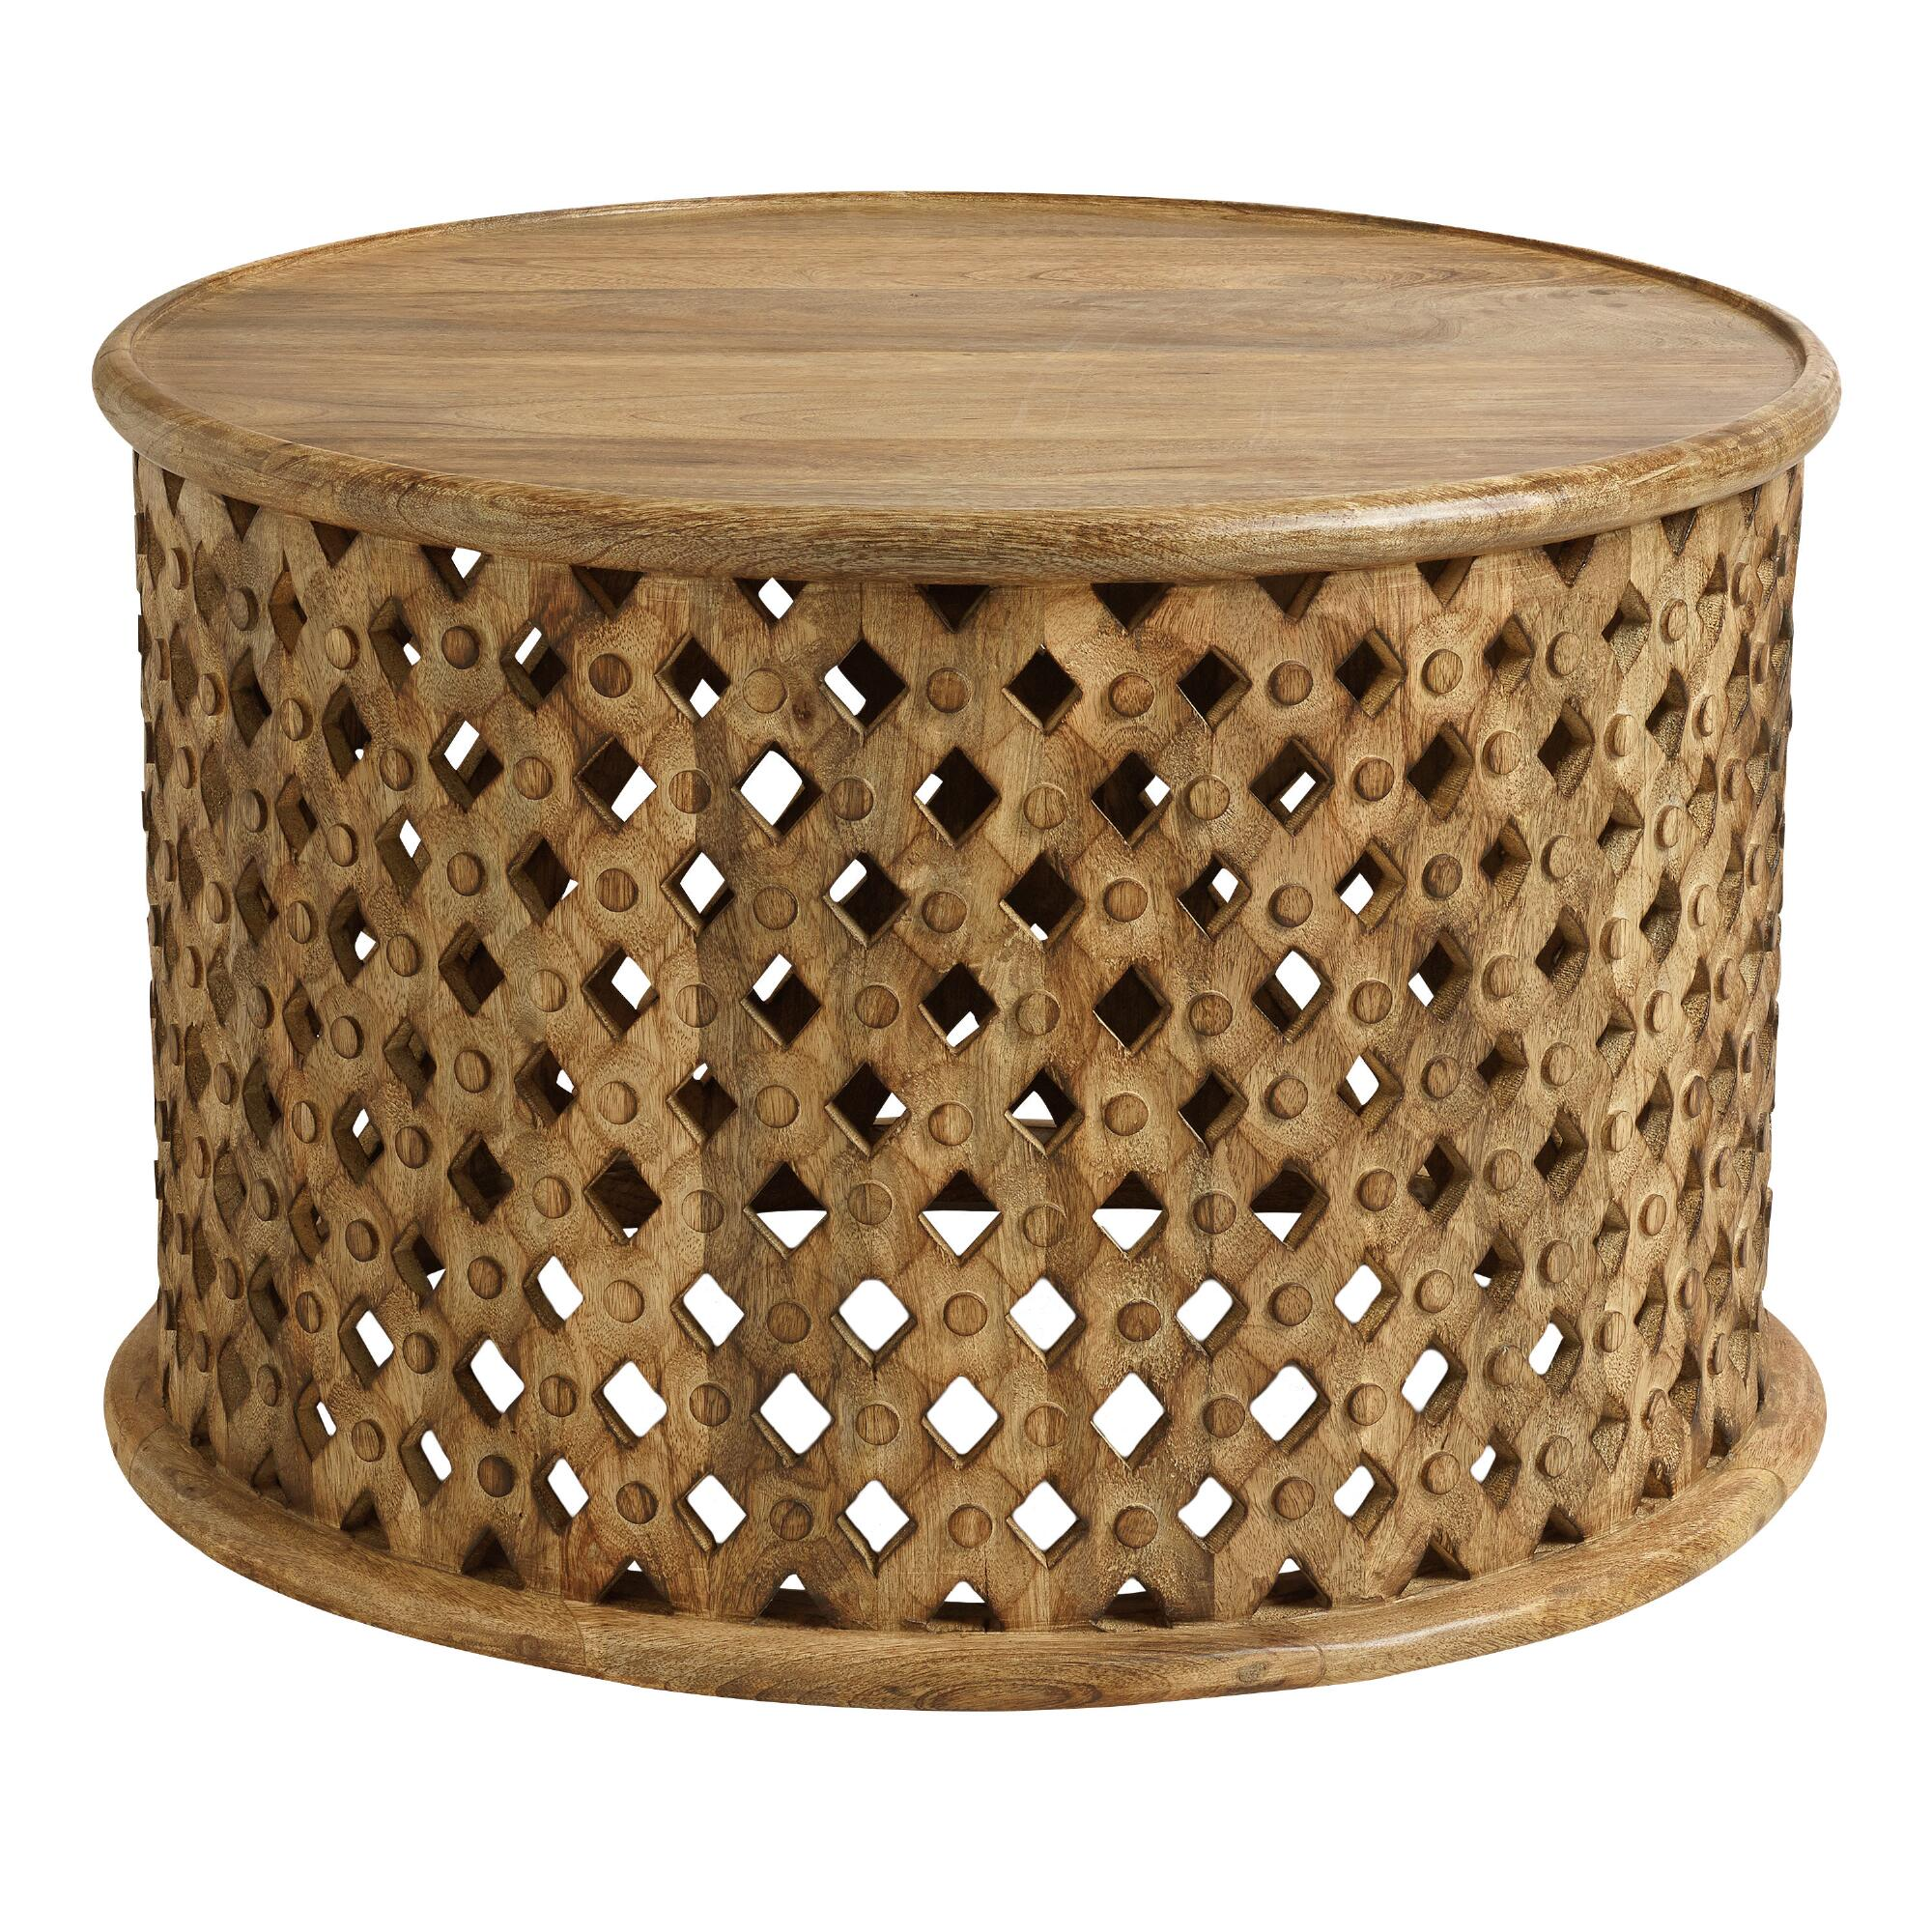 Round Tribal Carved Wood Coffee Table: Brown by World Market